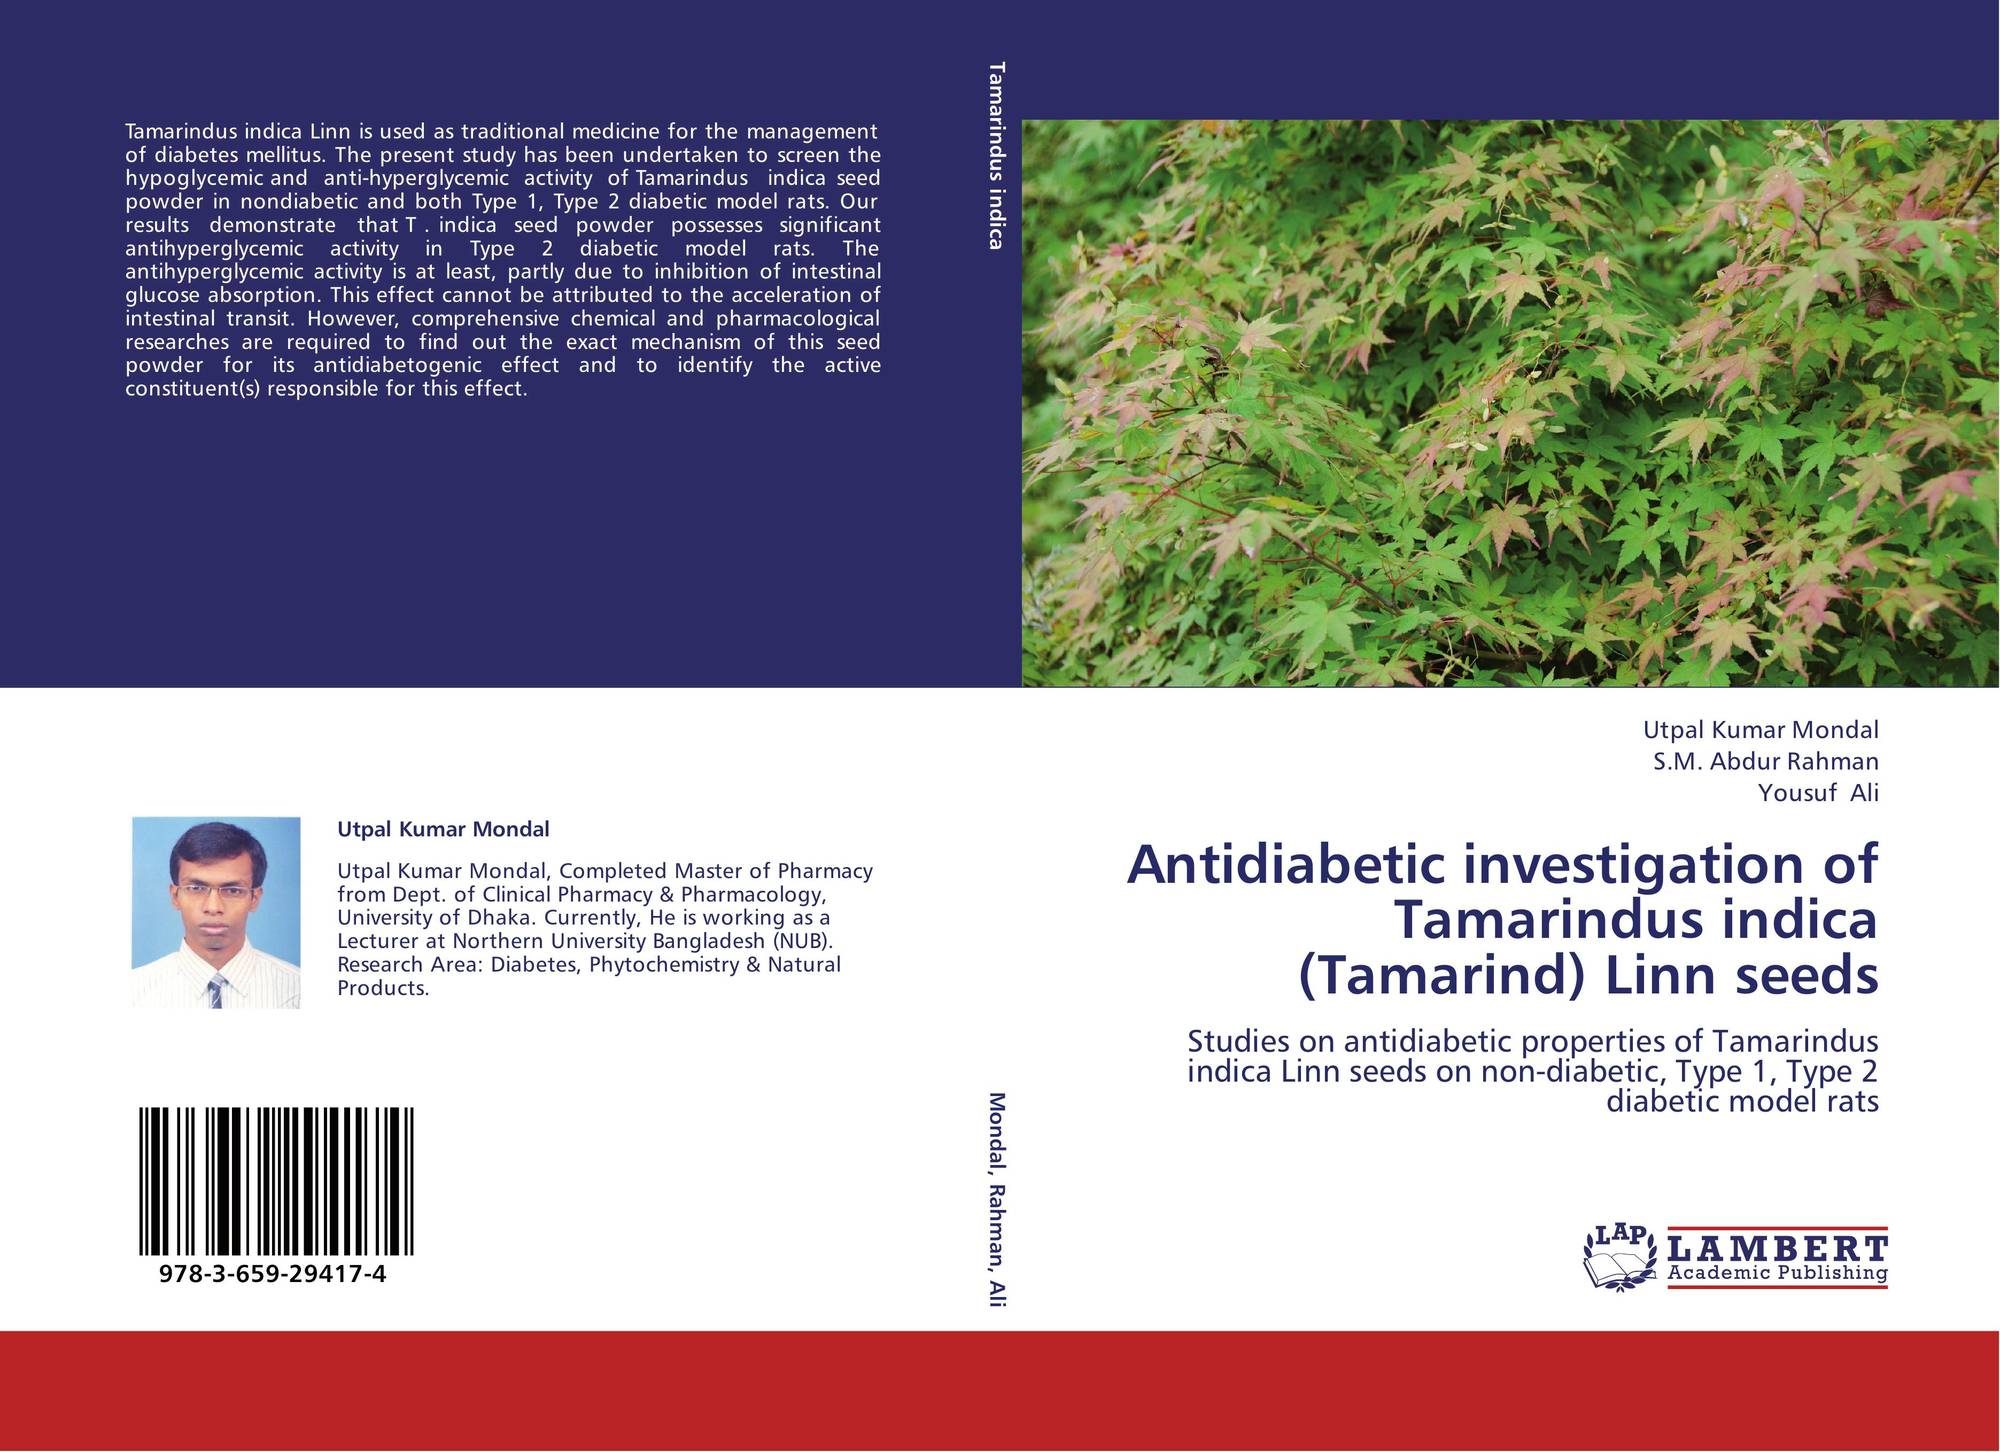 thesis on antidiabetic Results the present study indicated that aef possess hypoglycemic and  it is  one of the well-known medicinal plants for its antidiabetic properties [8]   leaves and stems of the medicinal plant anismels indica, m phil thesis.